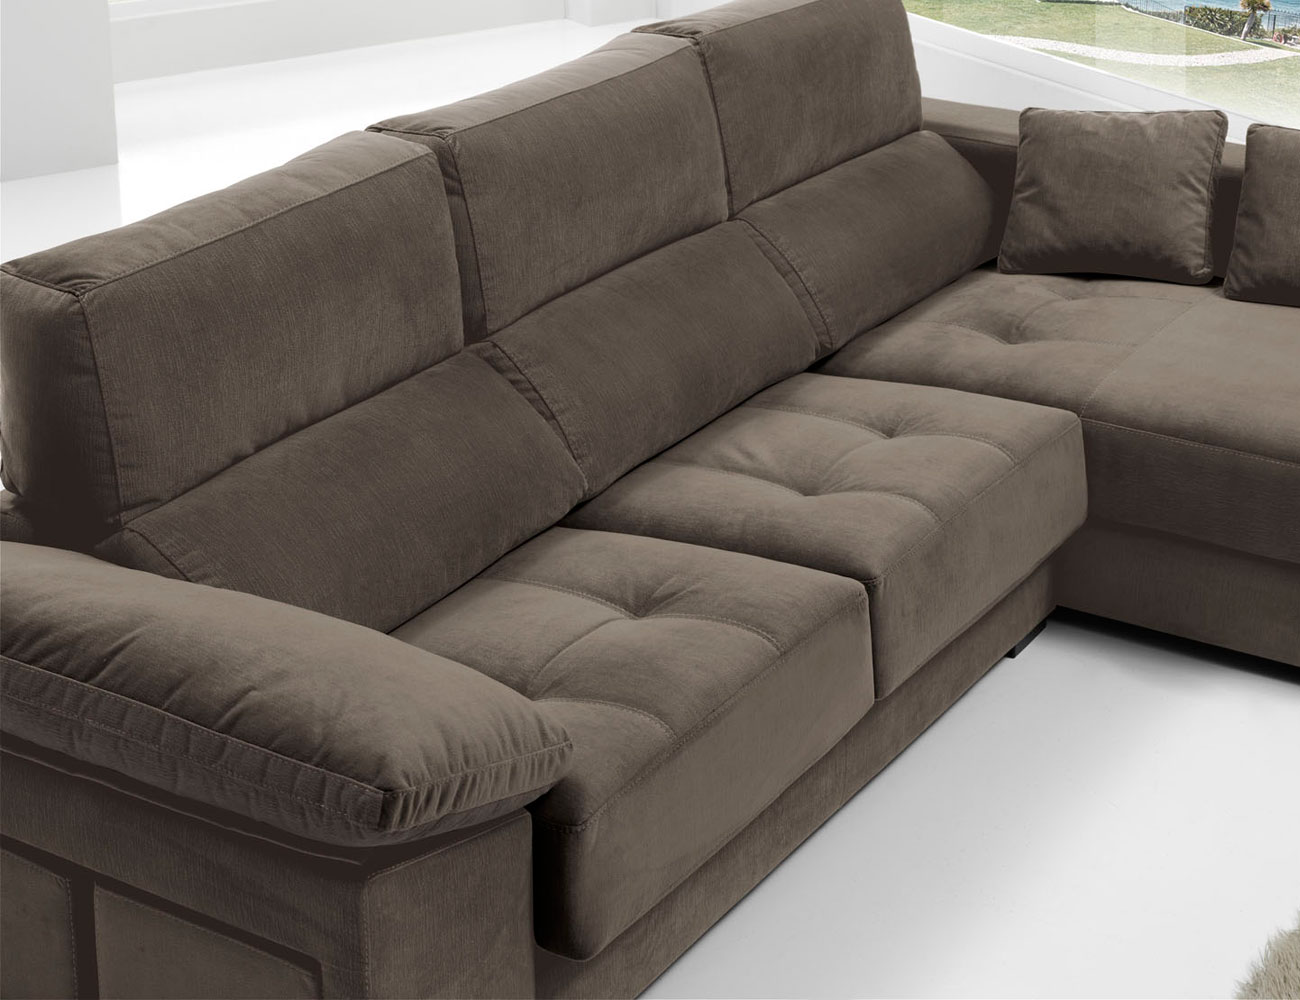 Sofa chaiselongue anti manchas bering pouf 264